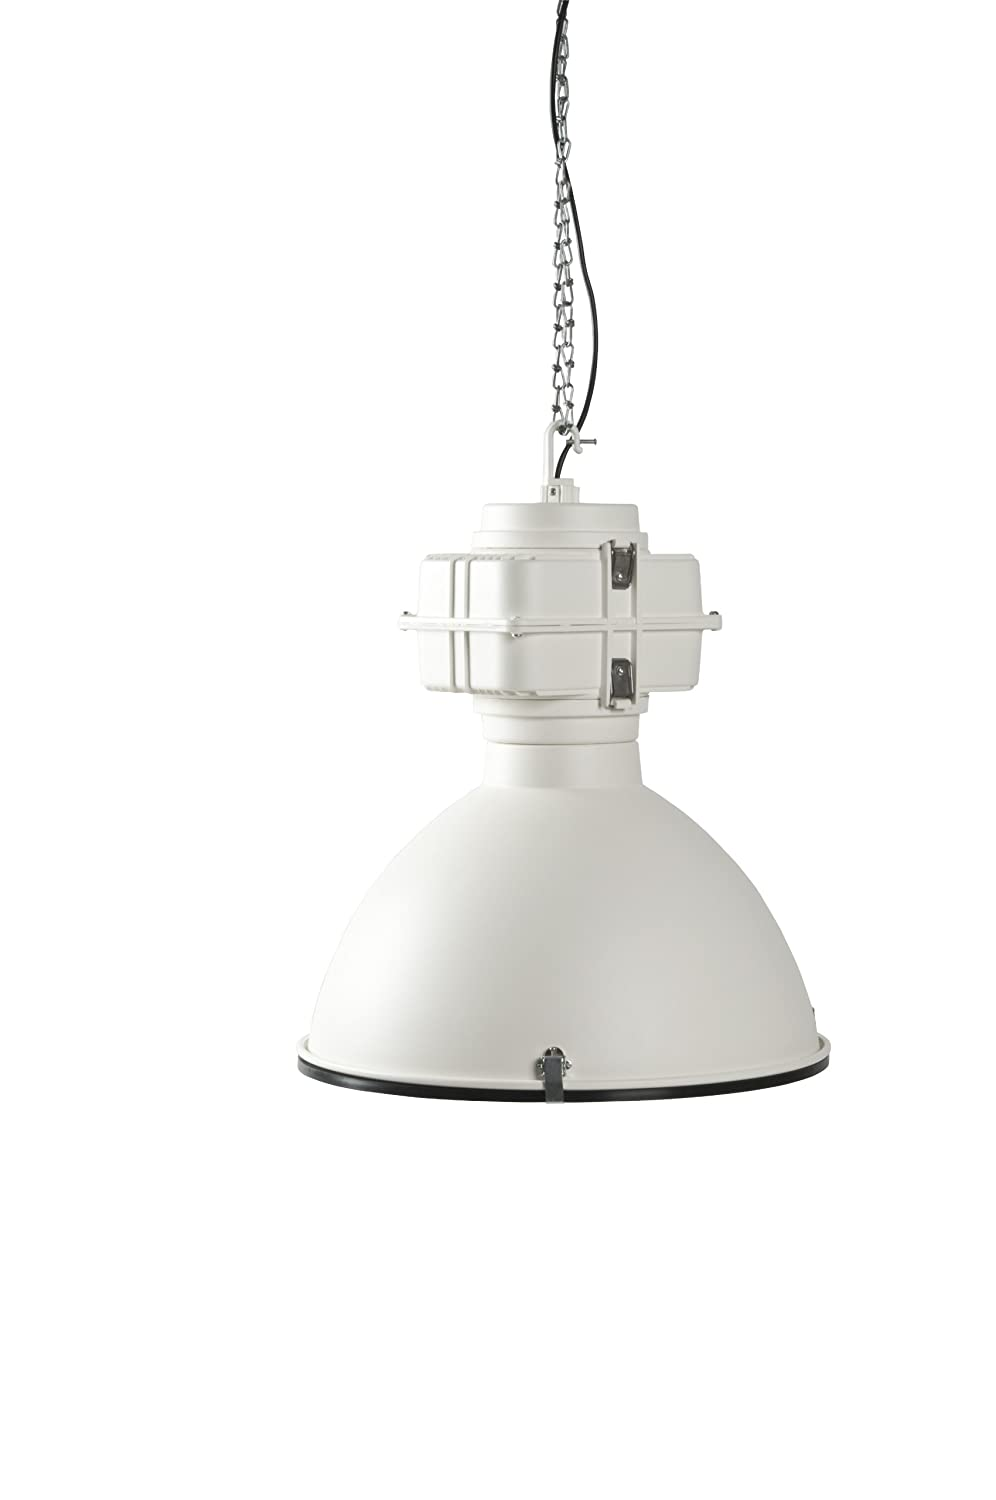 Zuiver 5500606 Pendant Lamp VIC Industry, Metall, weiß